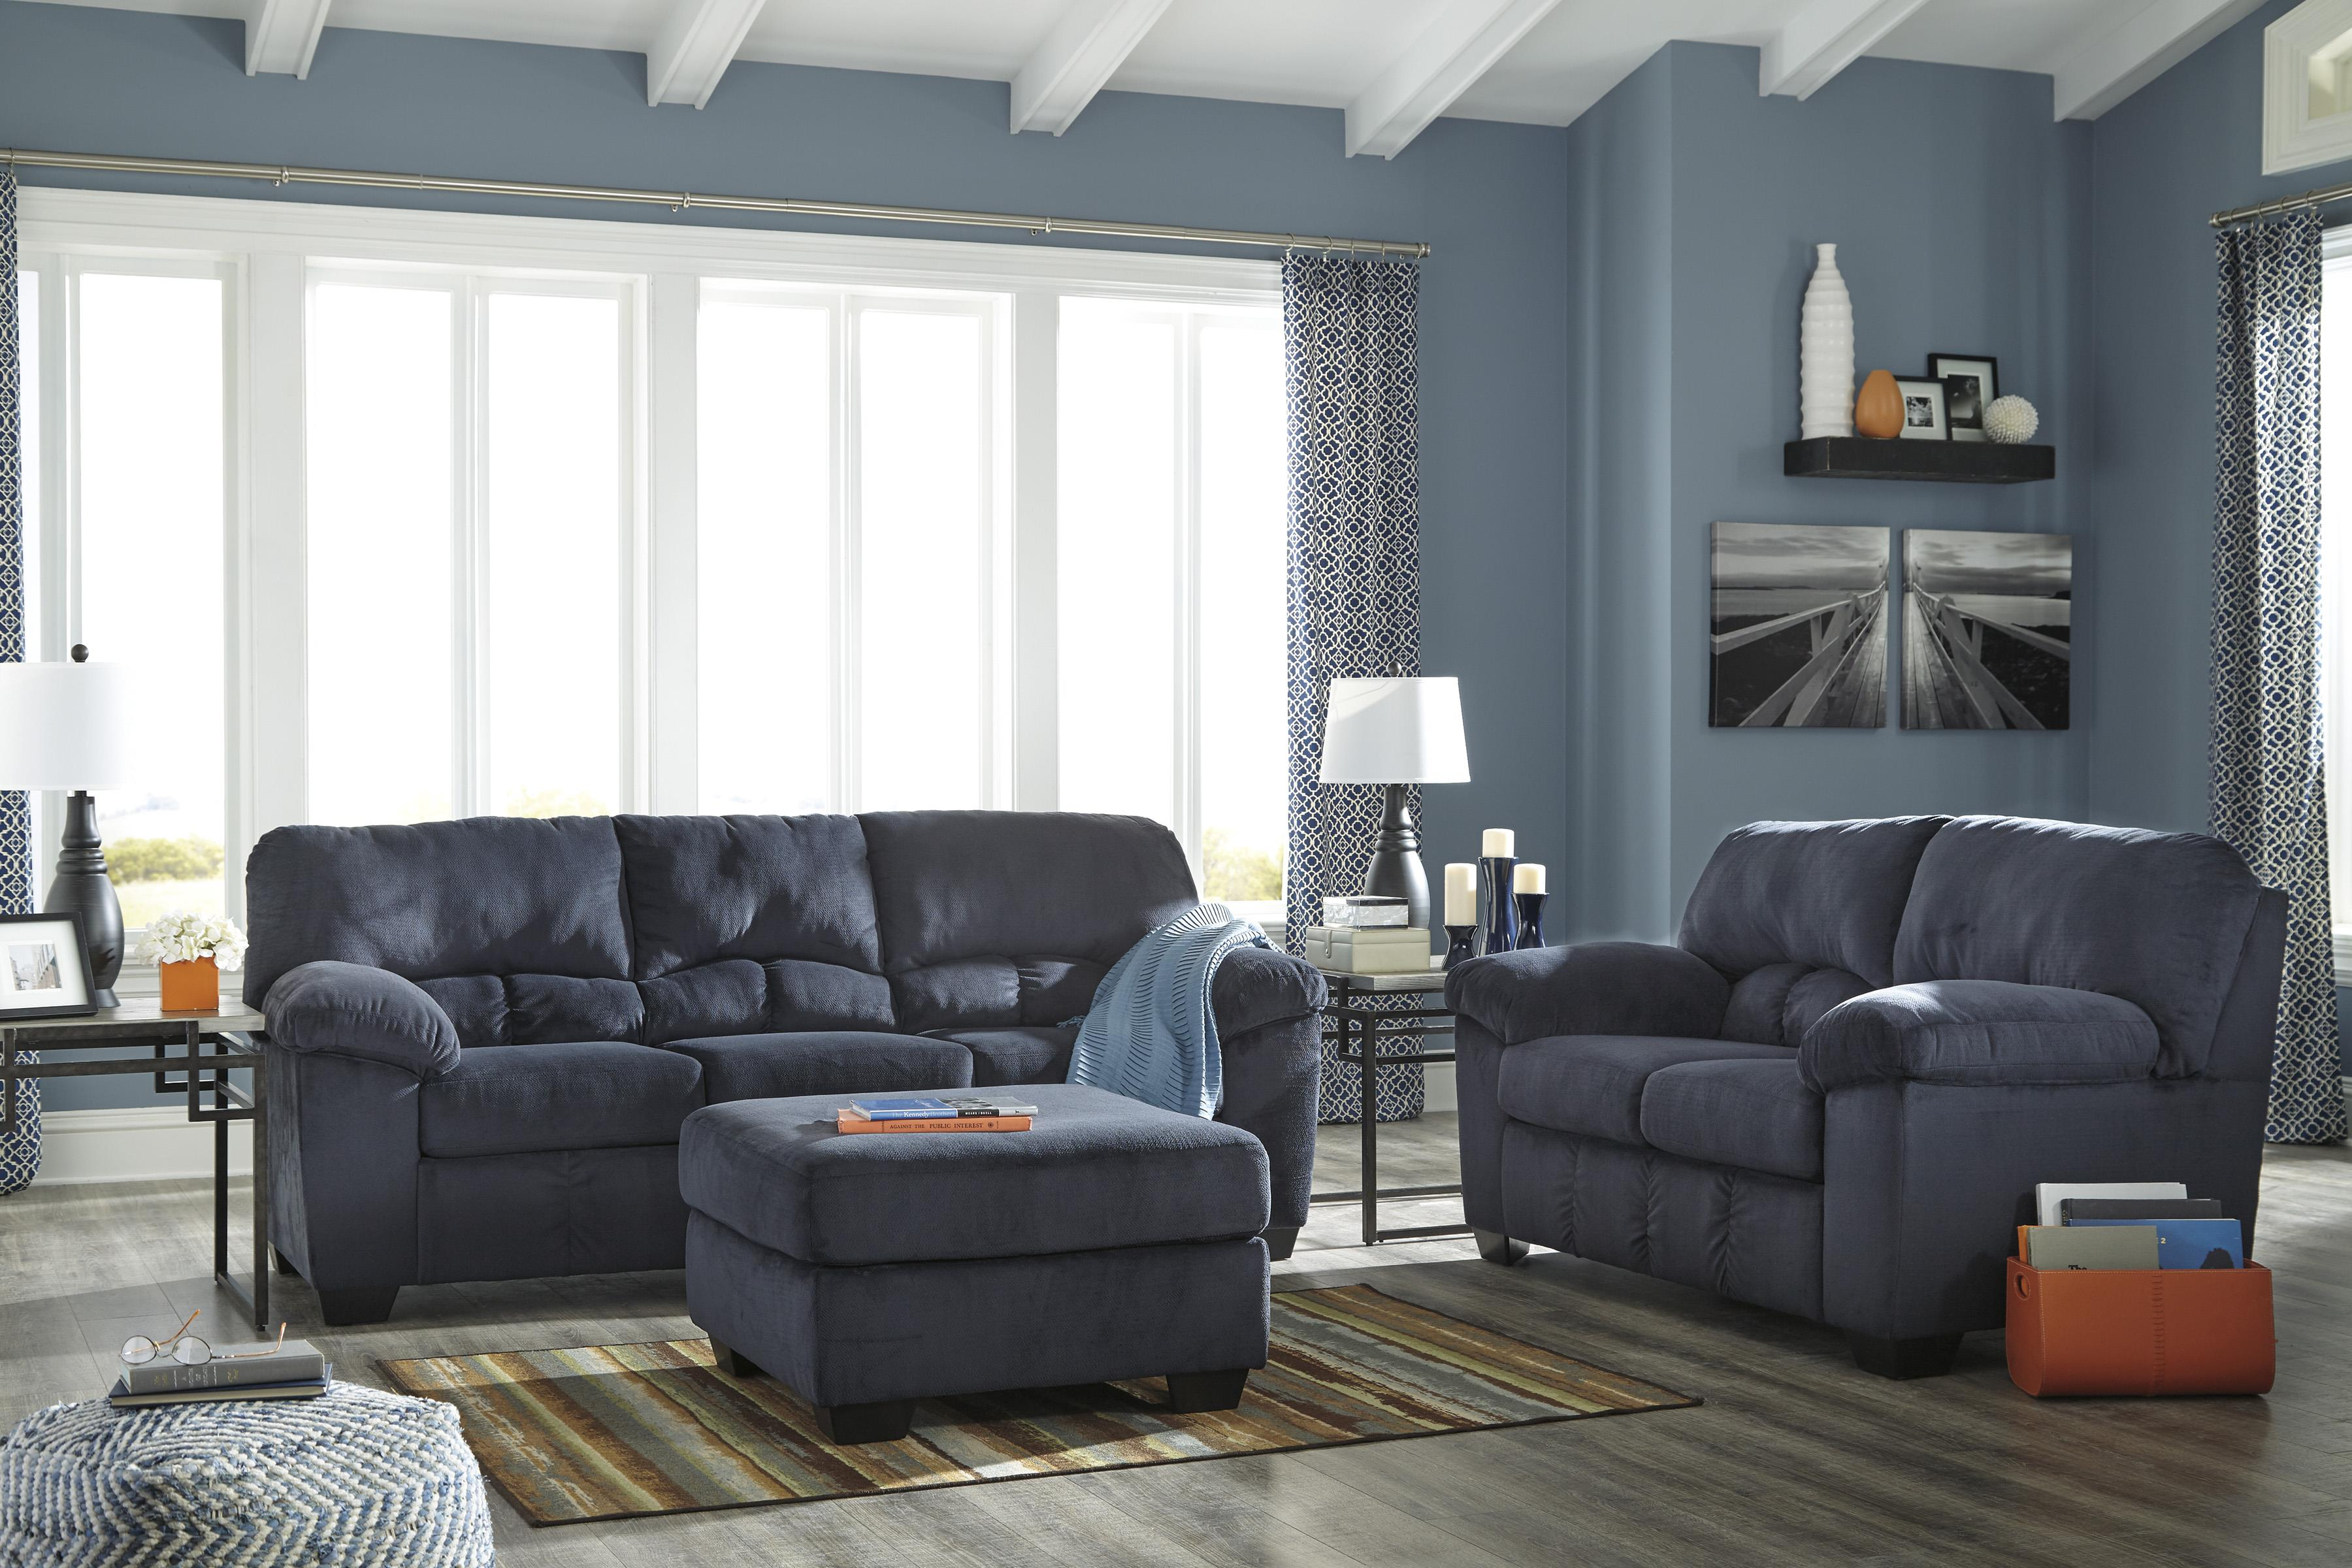 Signature Design by Ashley Dailey Stationary Living Room Group - Item Number: 95402 Living Room Group 2